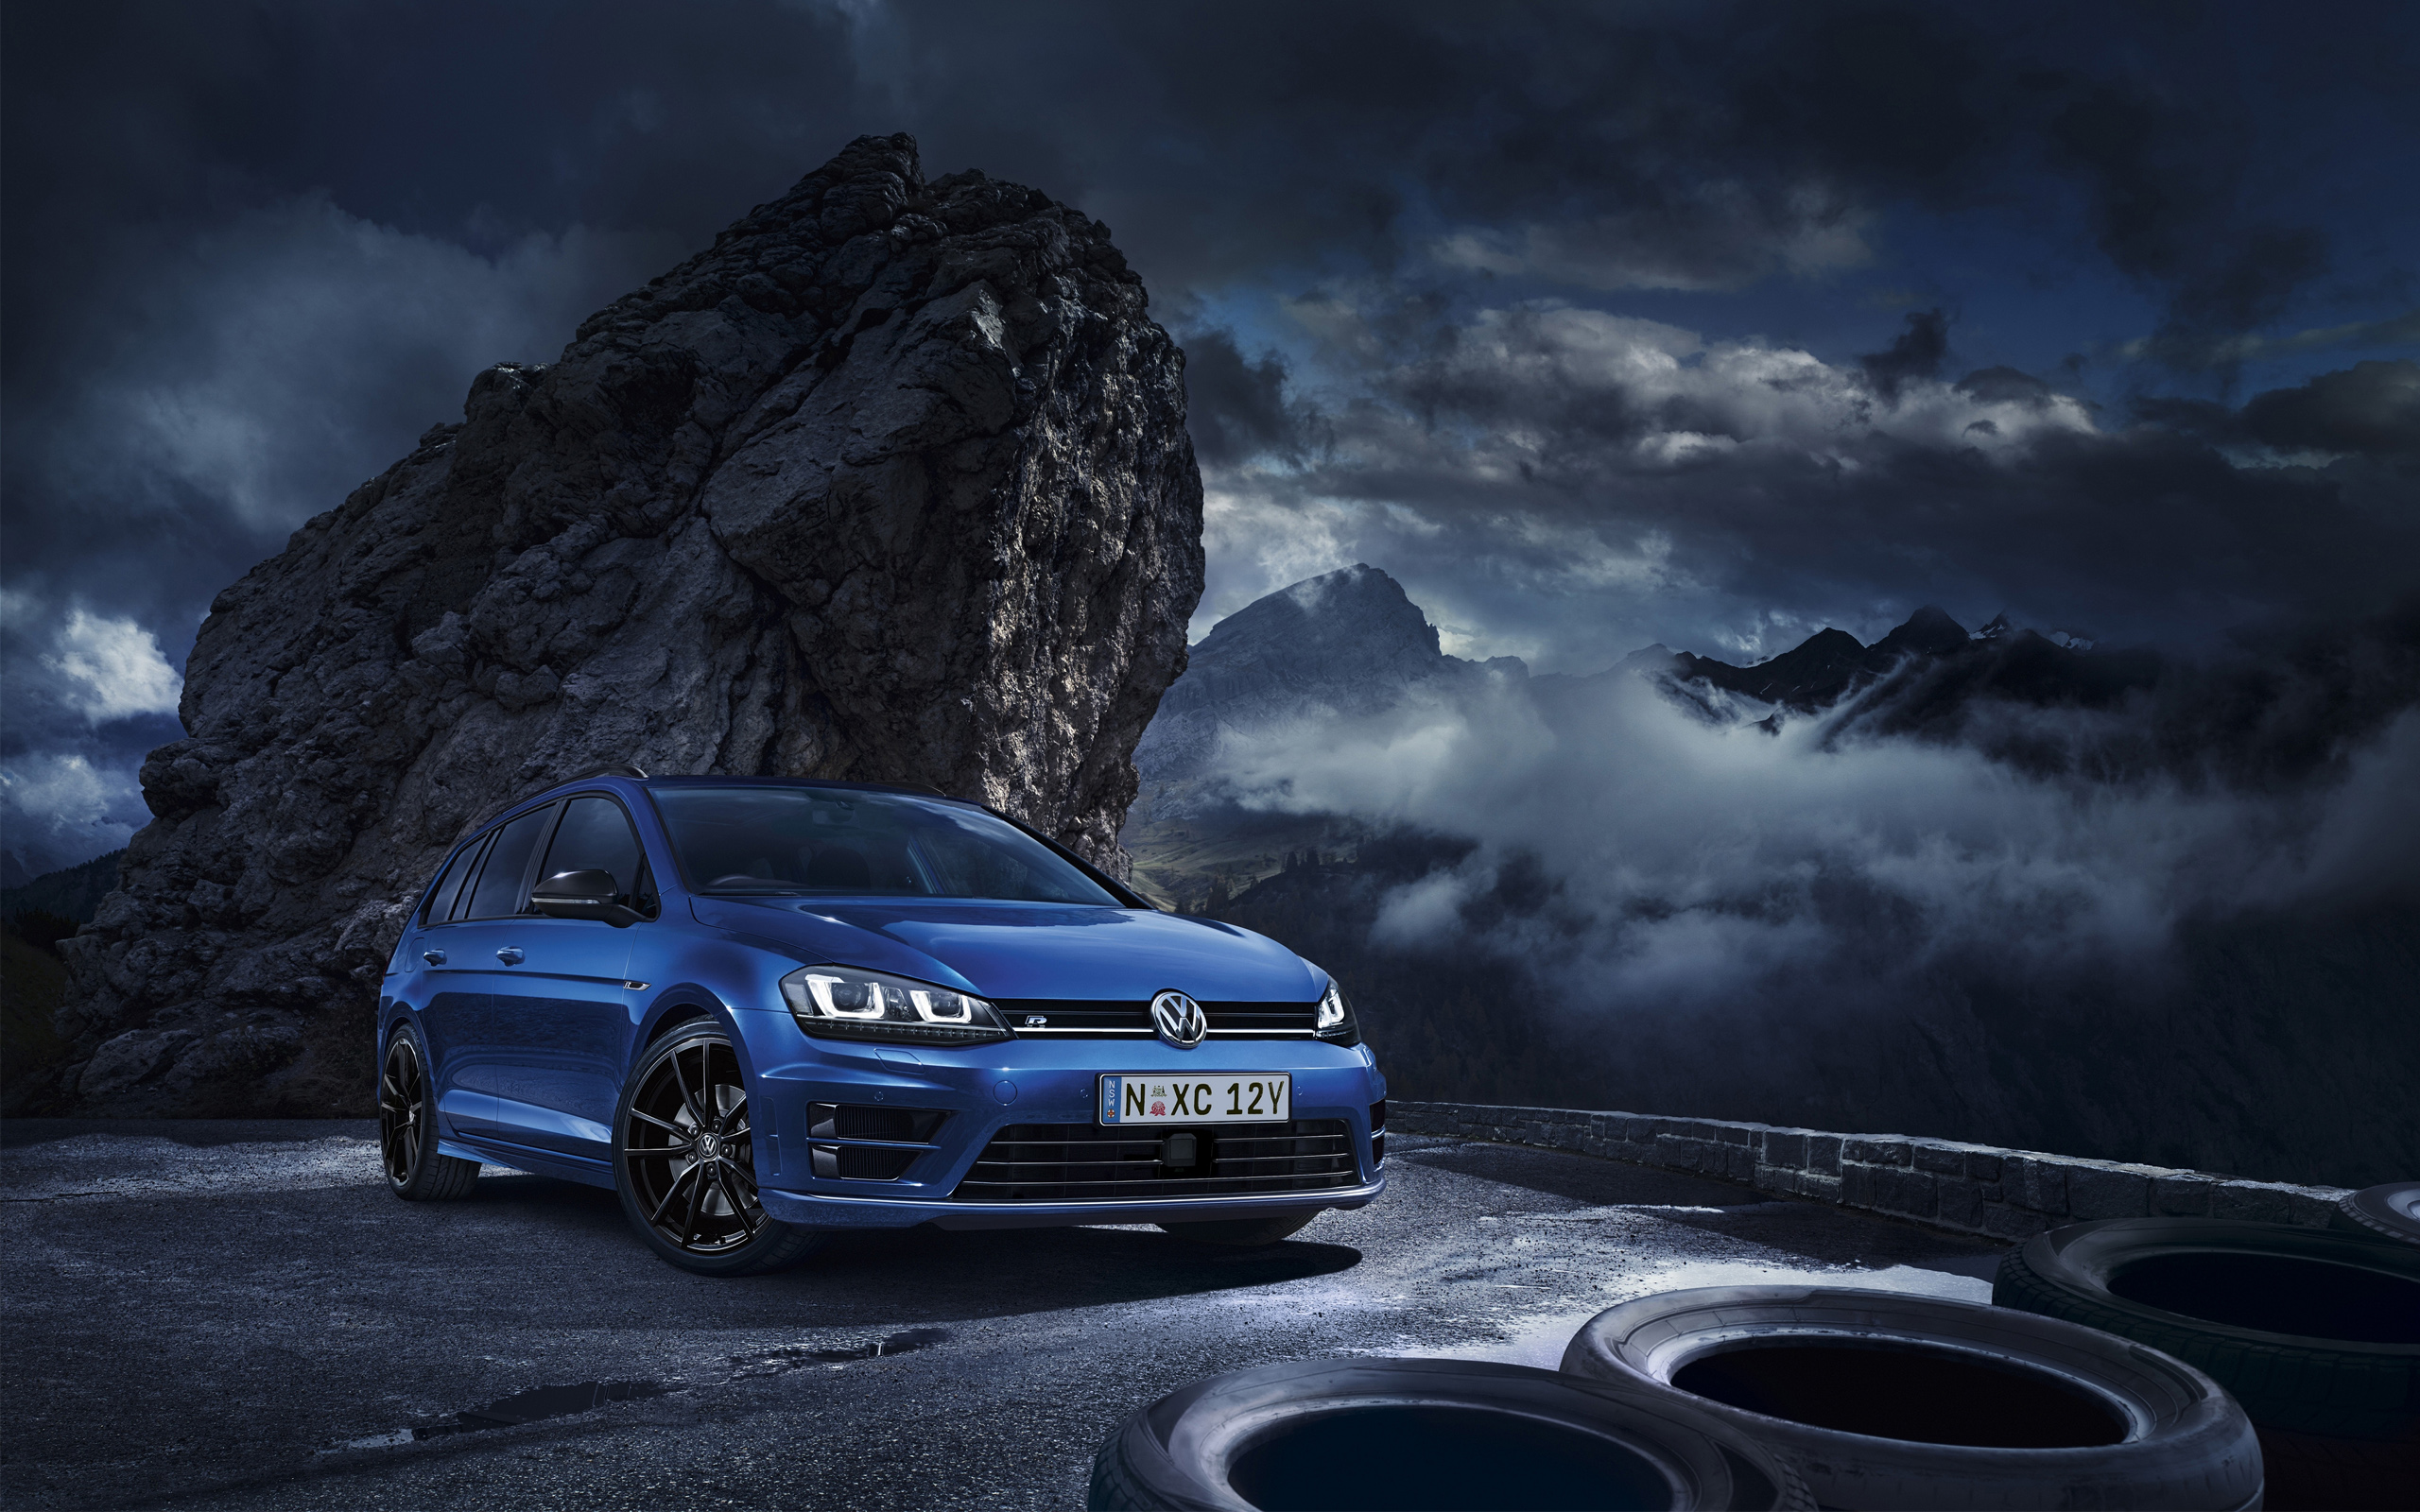 2015 Volkswagen Golf R Wagon Wallpaper Hd Car Wallpapers